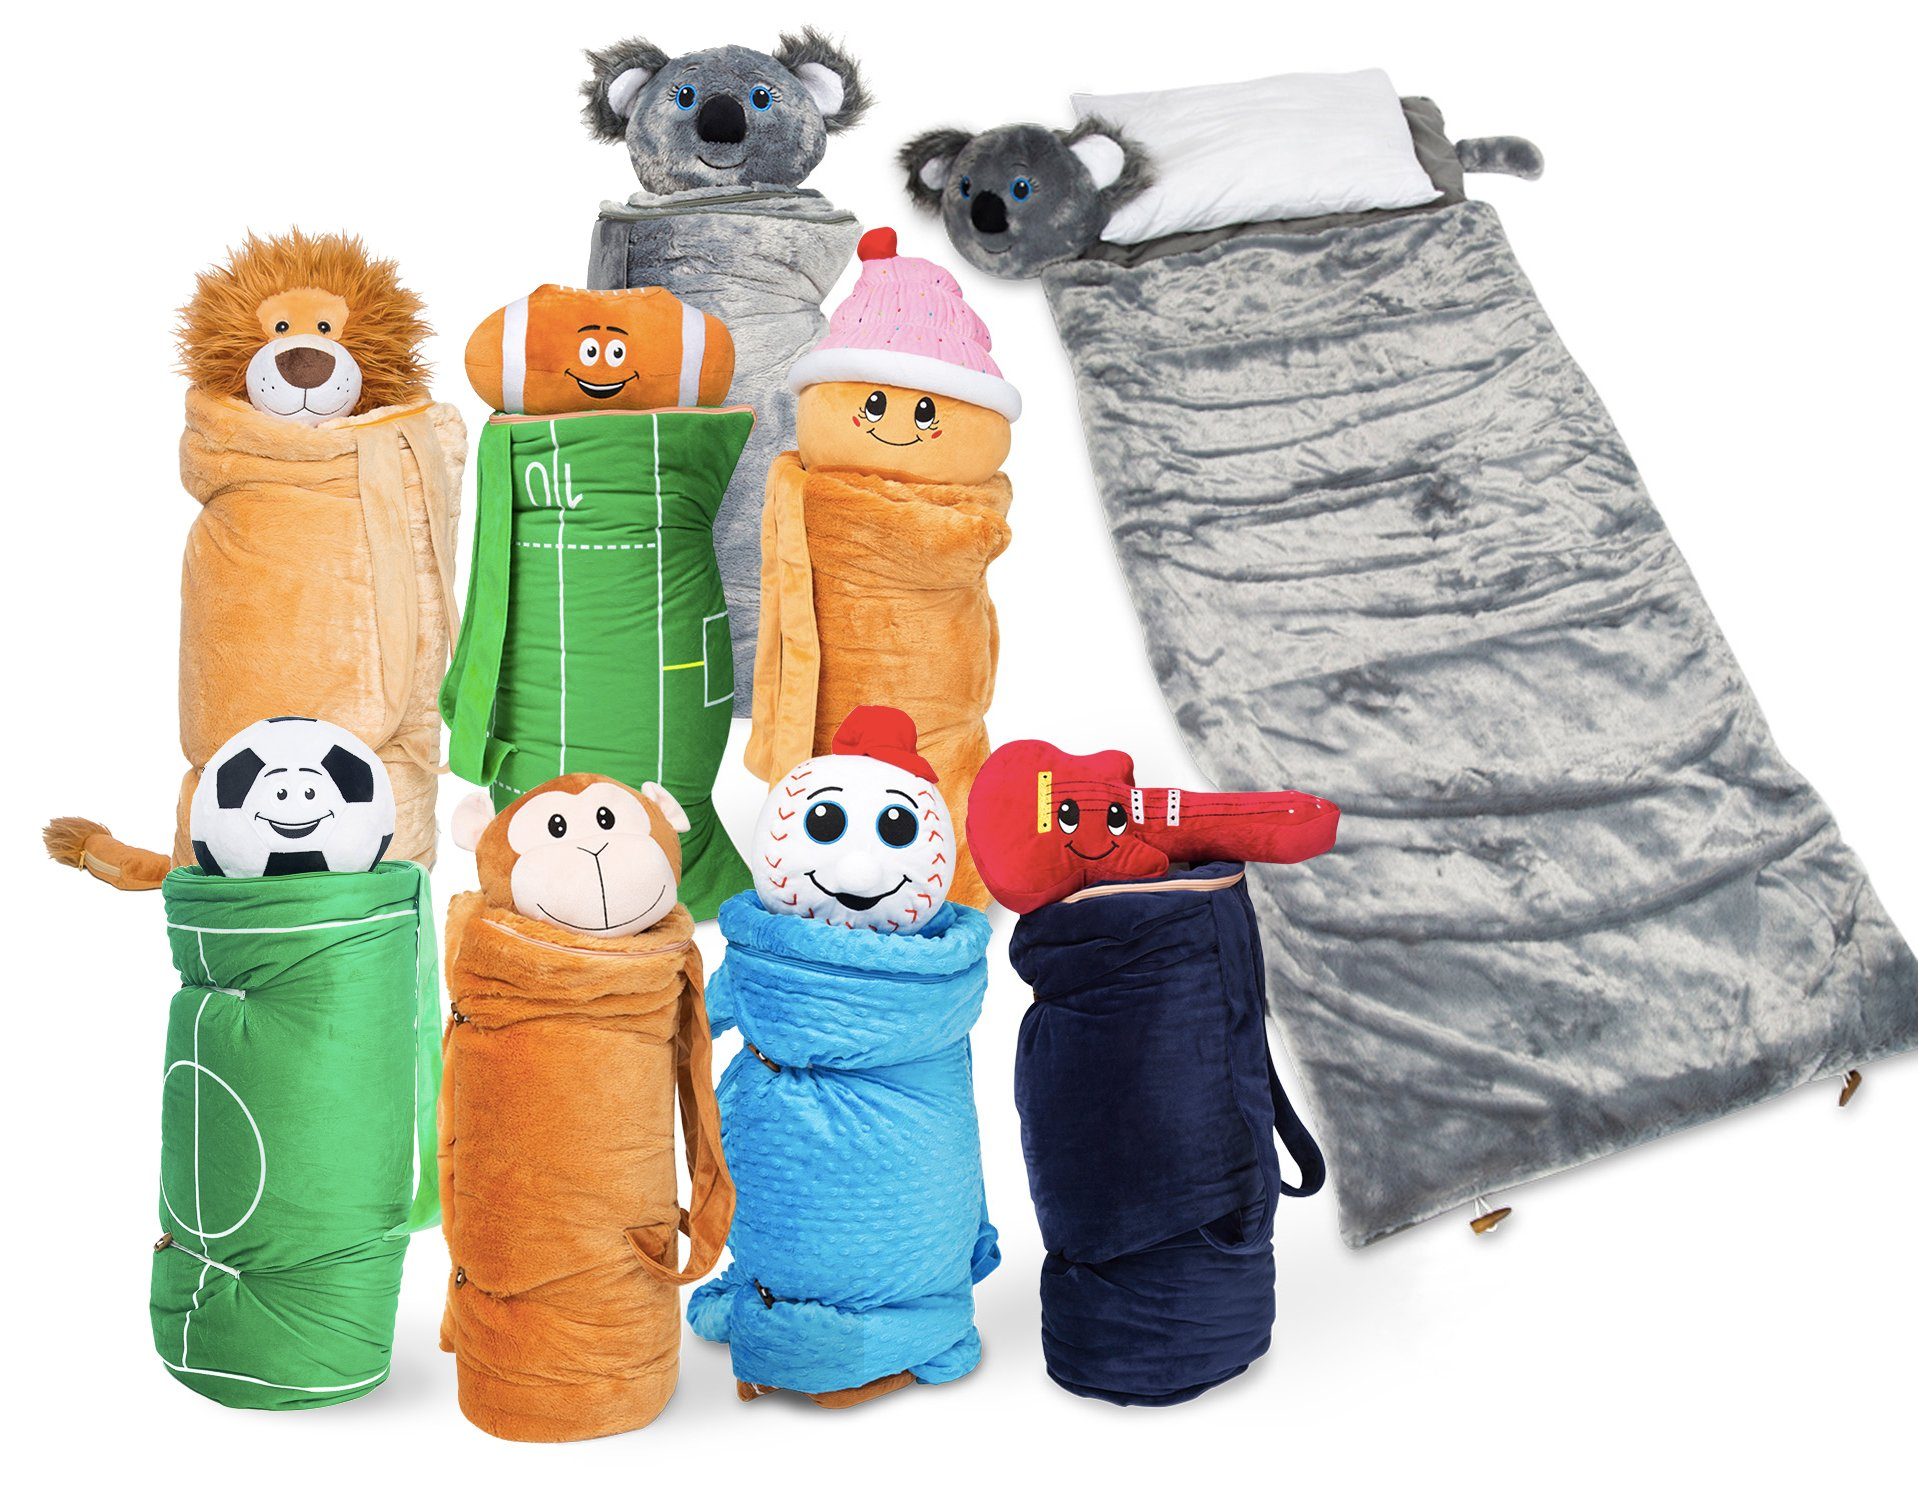 Super Fun & Unique Sleeping Bag/Overnight Travel Kit for Kids| Buddy Bagz's All in 1 Travelling-Made-Easy Solution Complete W/Stuffed Animal, Pillow, Sleeping Bag, Toiletry Overnight Bag (Monkey)